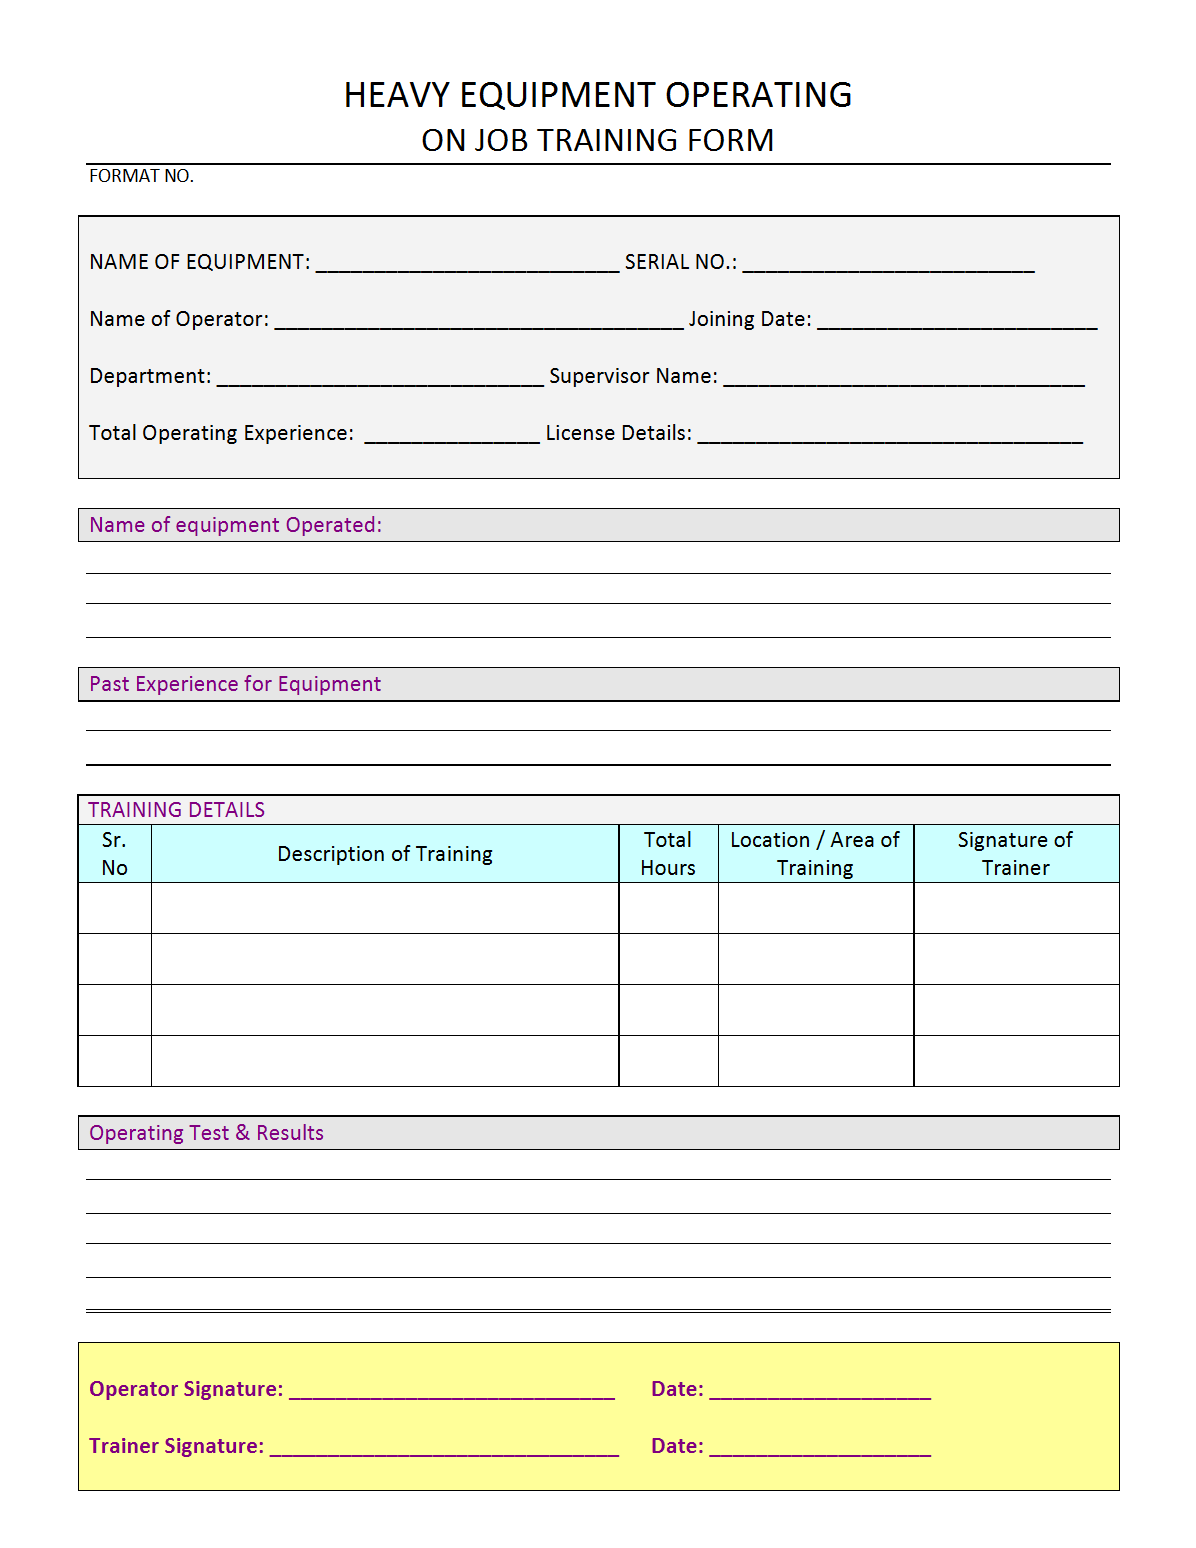 Heavy Equipment Operator training form